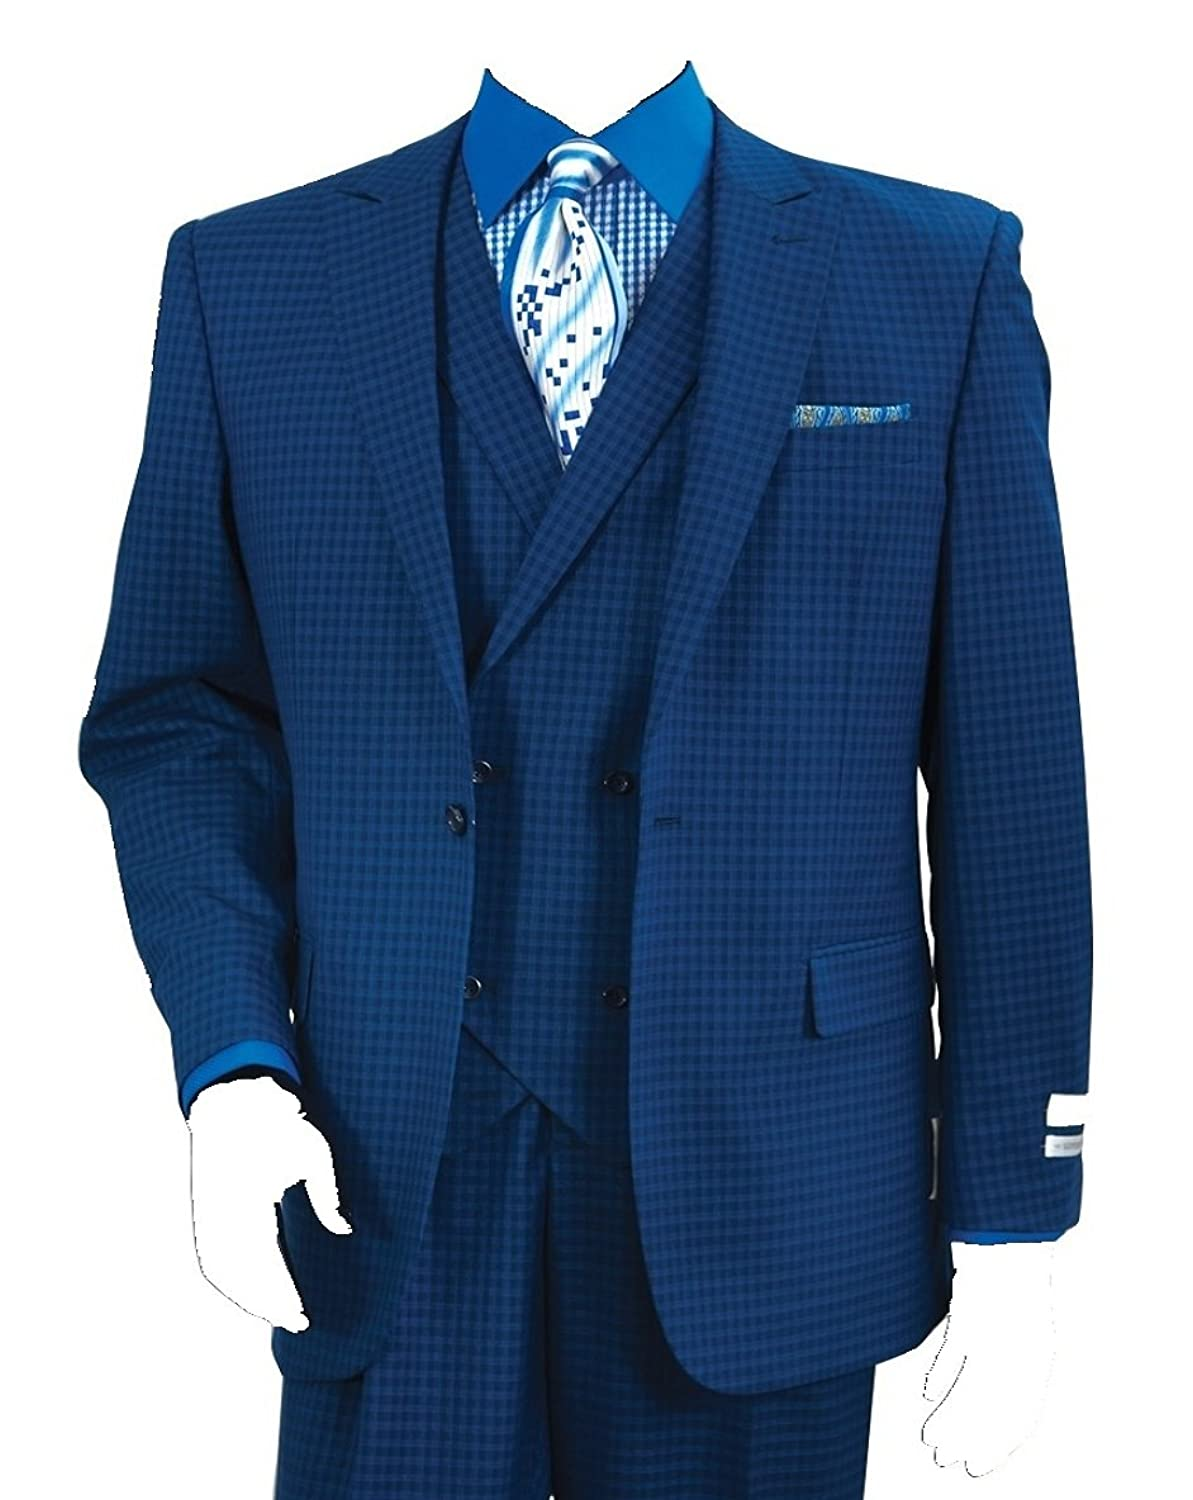 1940s Men's Suit History and Styling Tips Mens 3 Piece Single Button Mini-Plaid Pattern Suit (Indigo) $149.99 AT vintagedancer.com